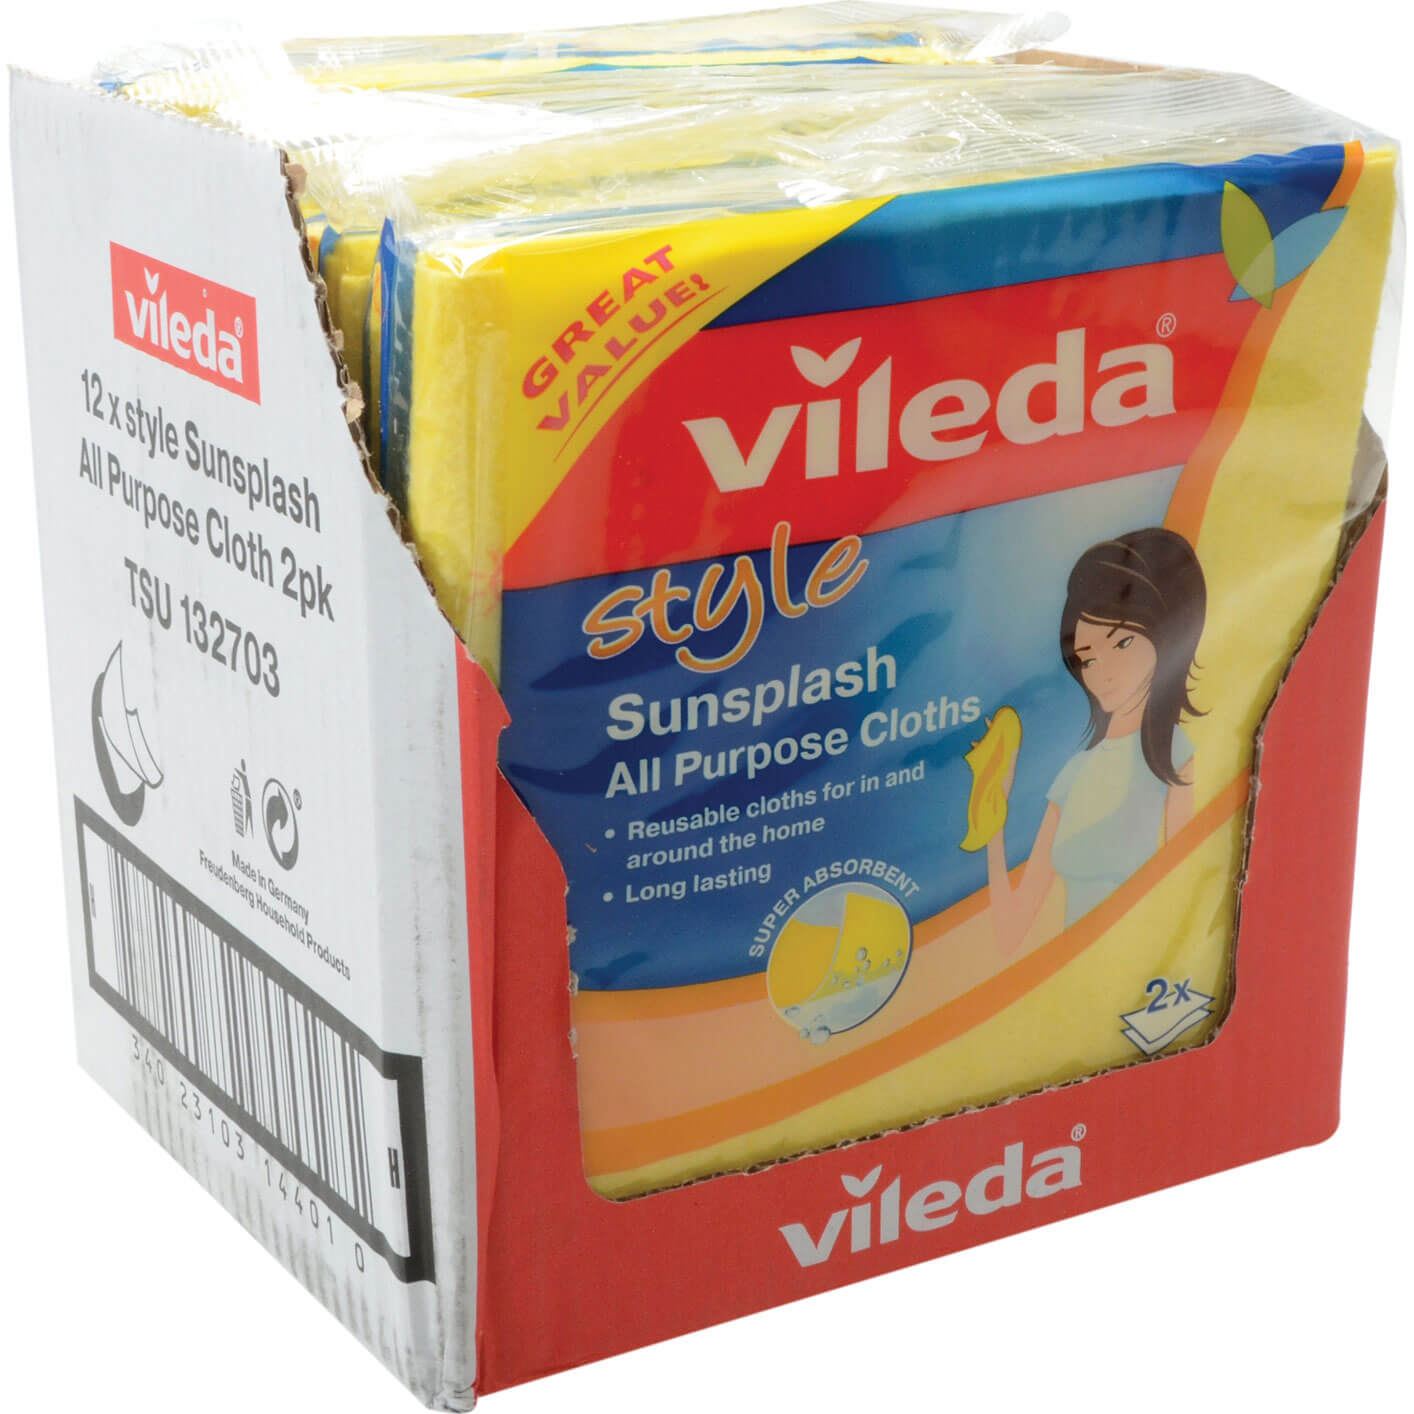 Image of Vileda All Purpose Cleaning Cloths